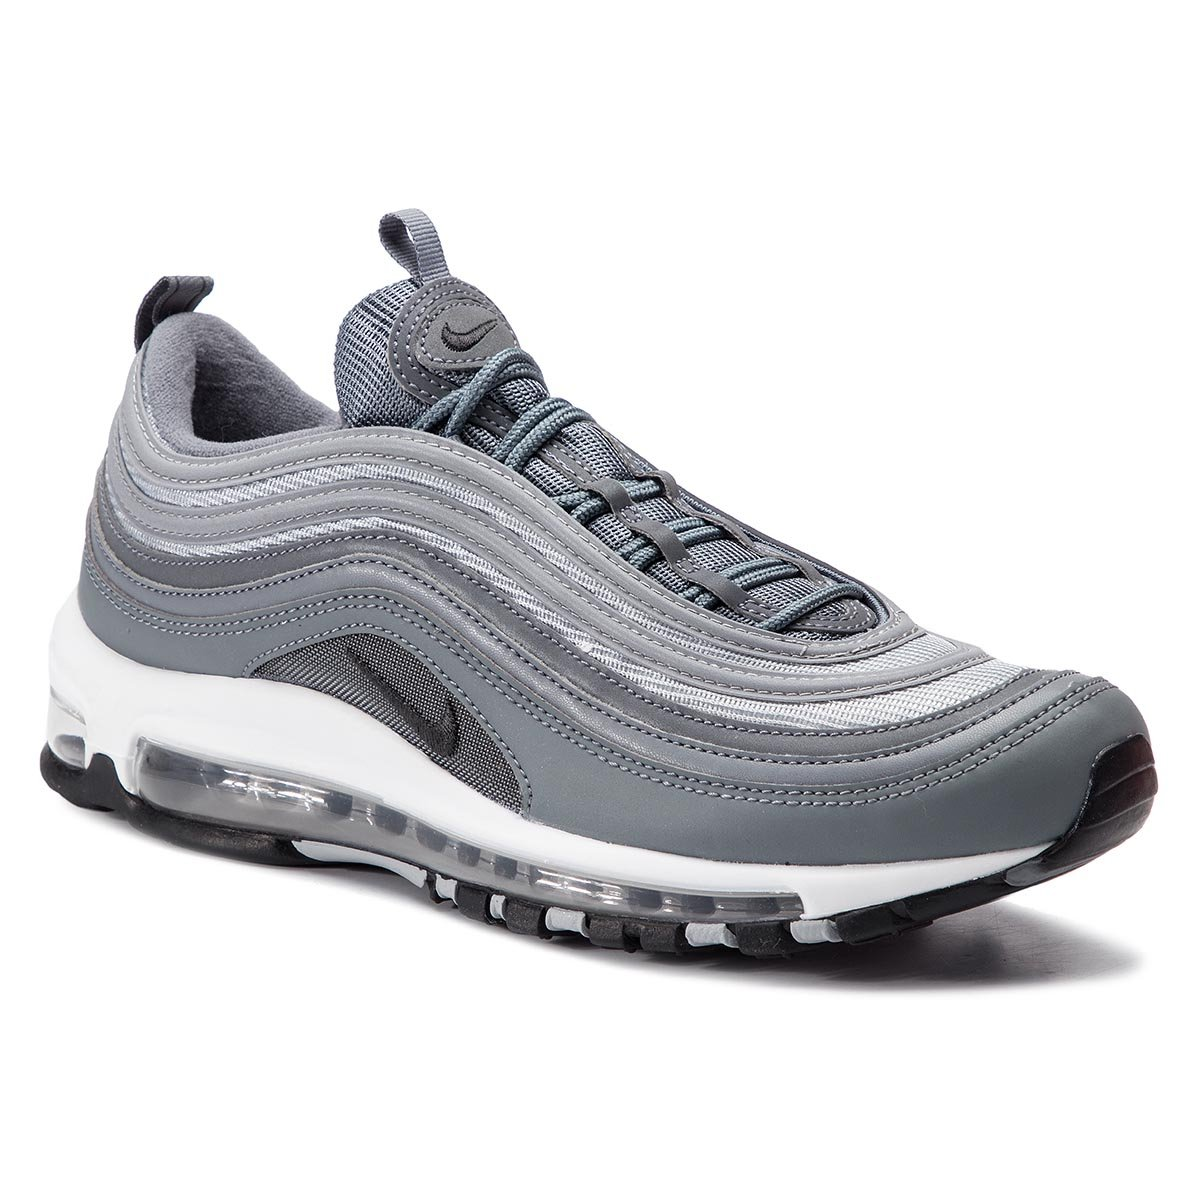 Buty NIKE – Air Max 97 Essential BV1986 001 Cool Szare/Wolf Szare/Anthracite